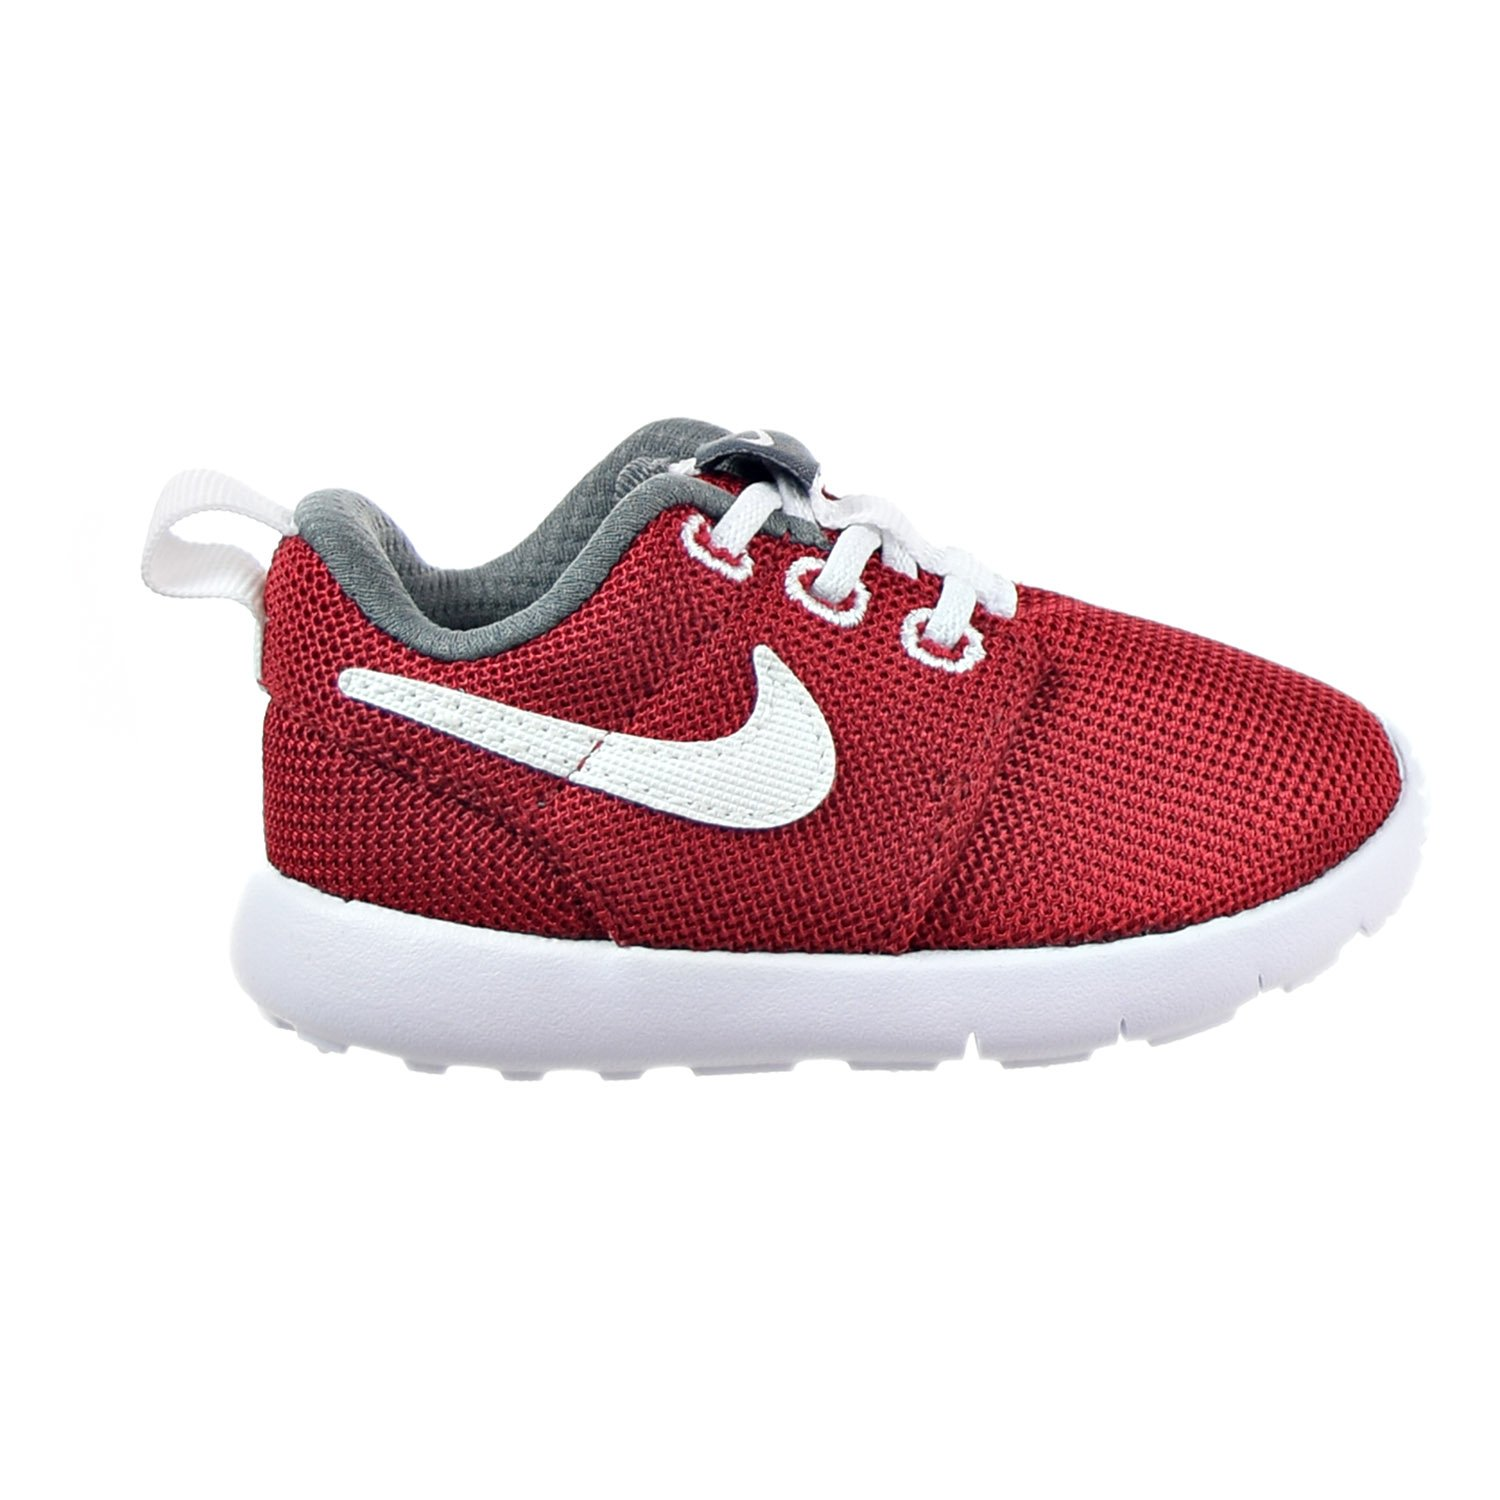 afcc73a66d4ec ... discount code for amazon nike 749430 603 roshe one tdv infants sneakers  nikegym red white dark